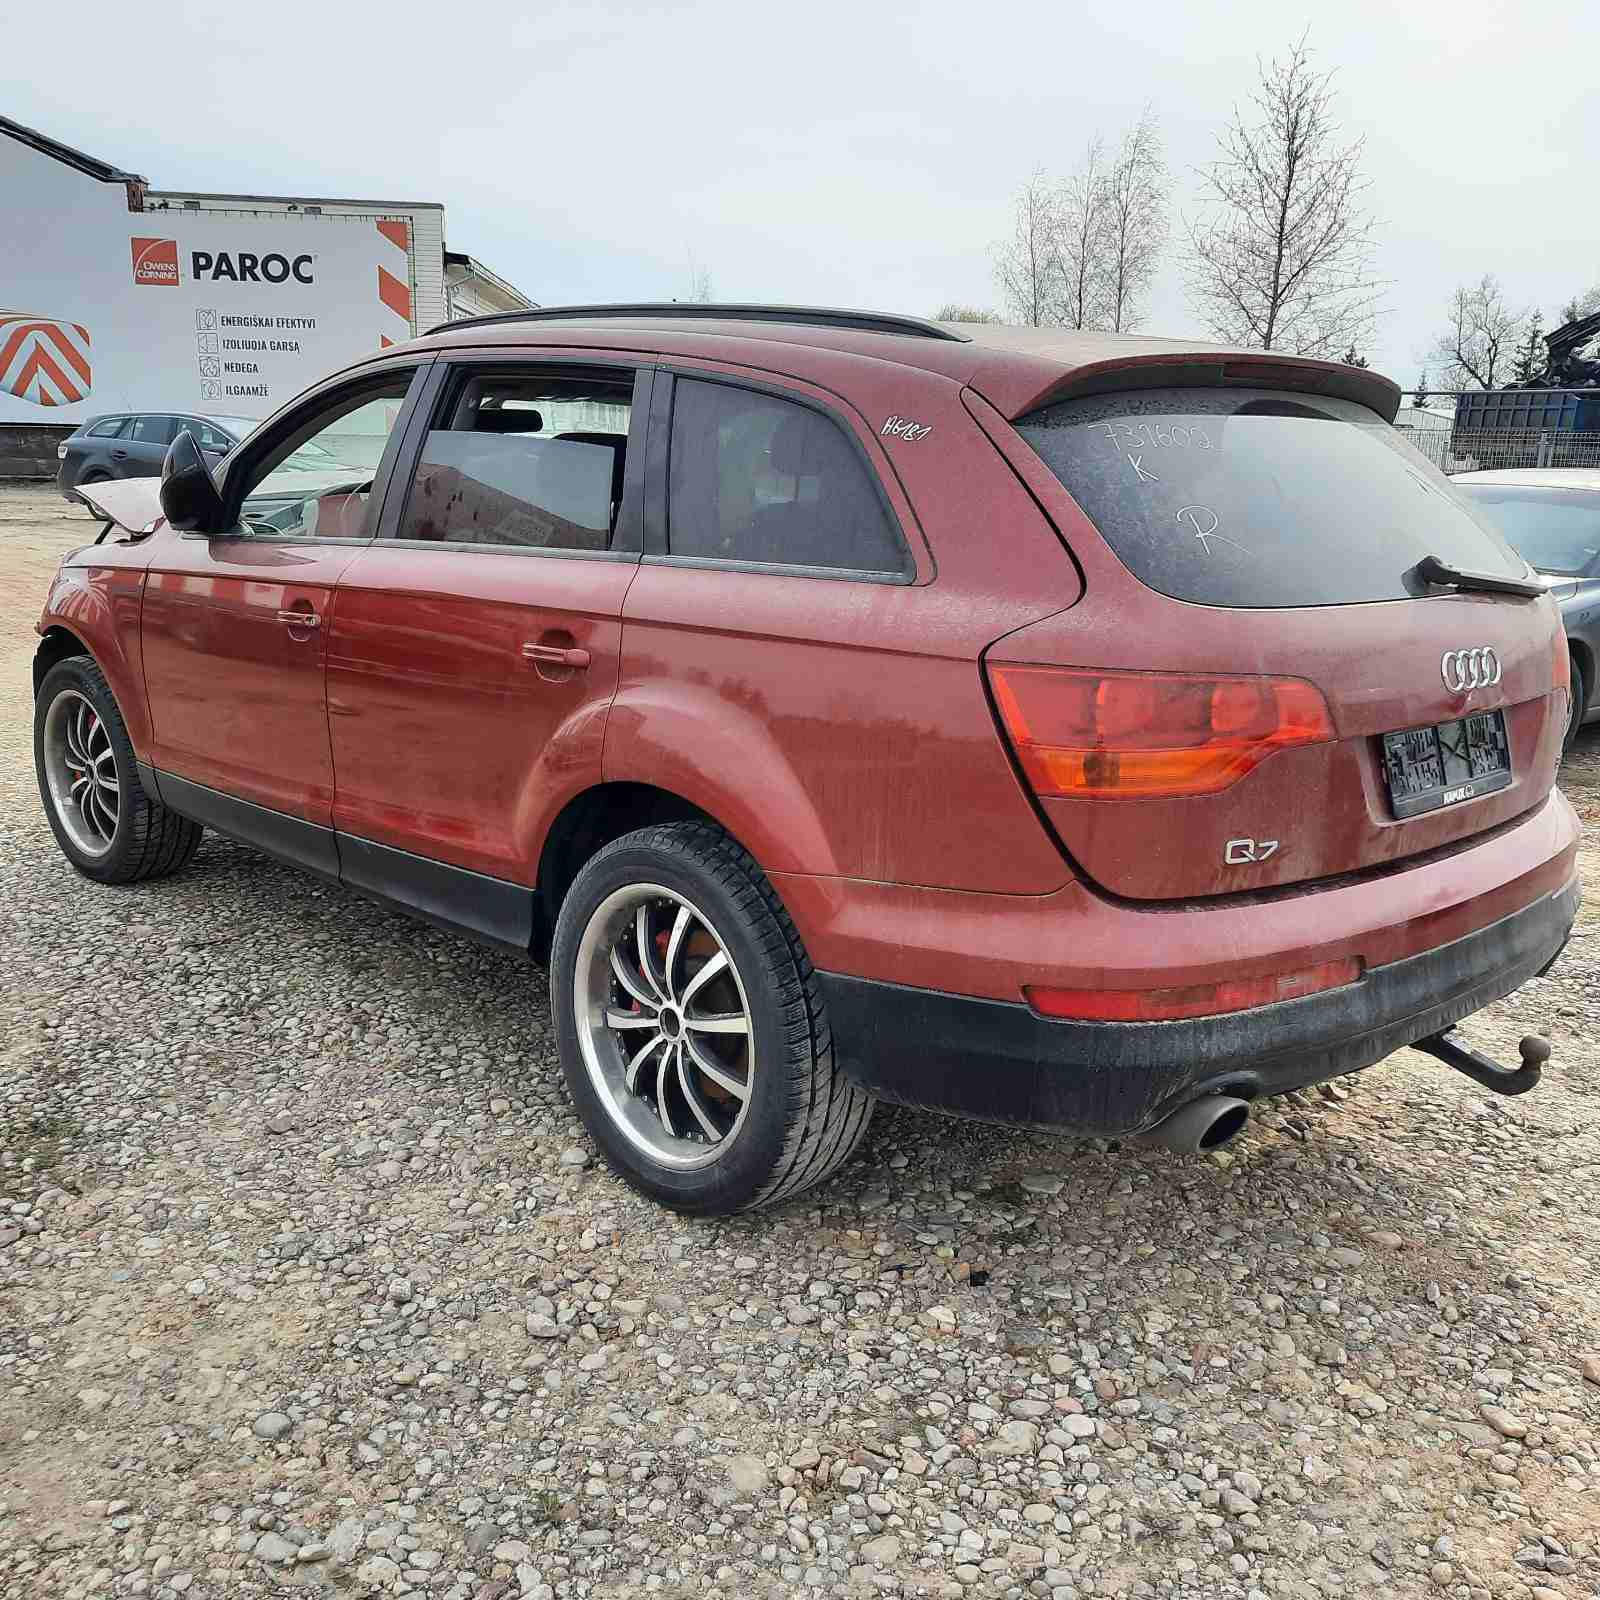 Used Car Parts Foto 8 Audi Q7 2006 3.0 Automatic Jeep 4/5 d. Red 2021-4-29 A6181